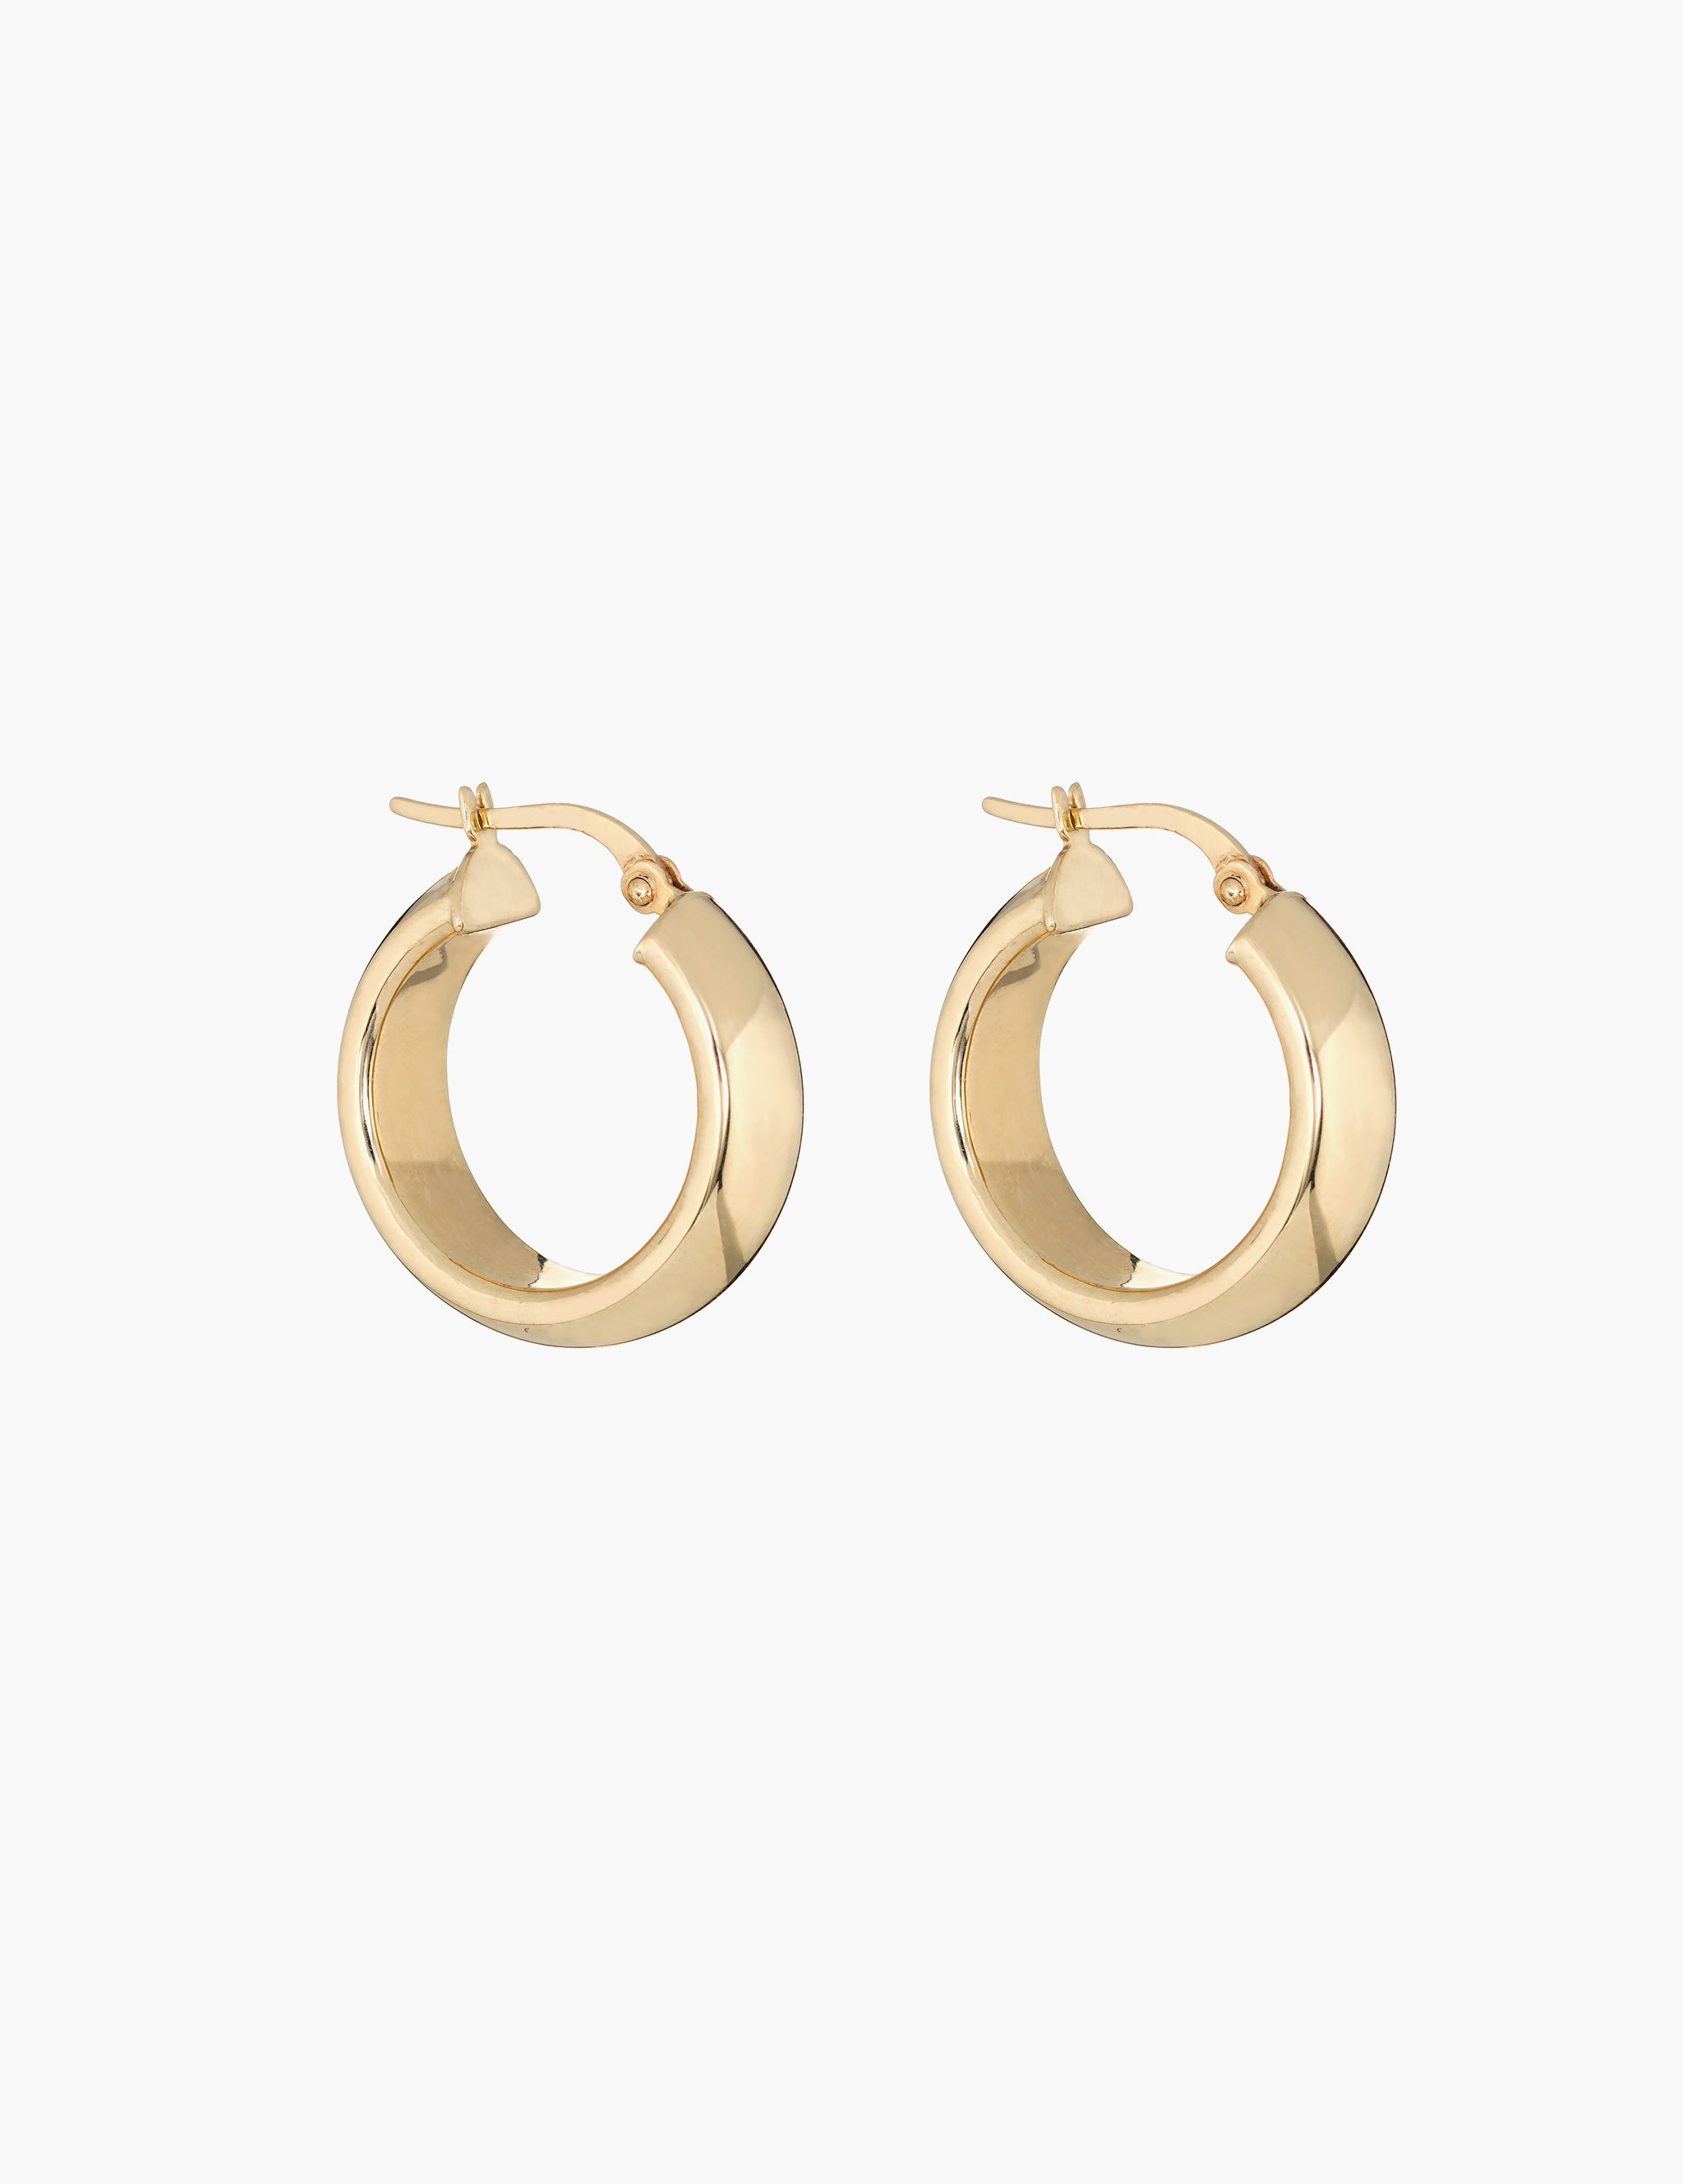 14k large gold hoops